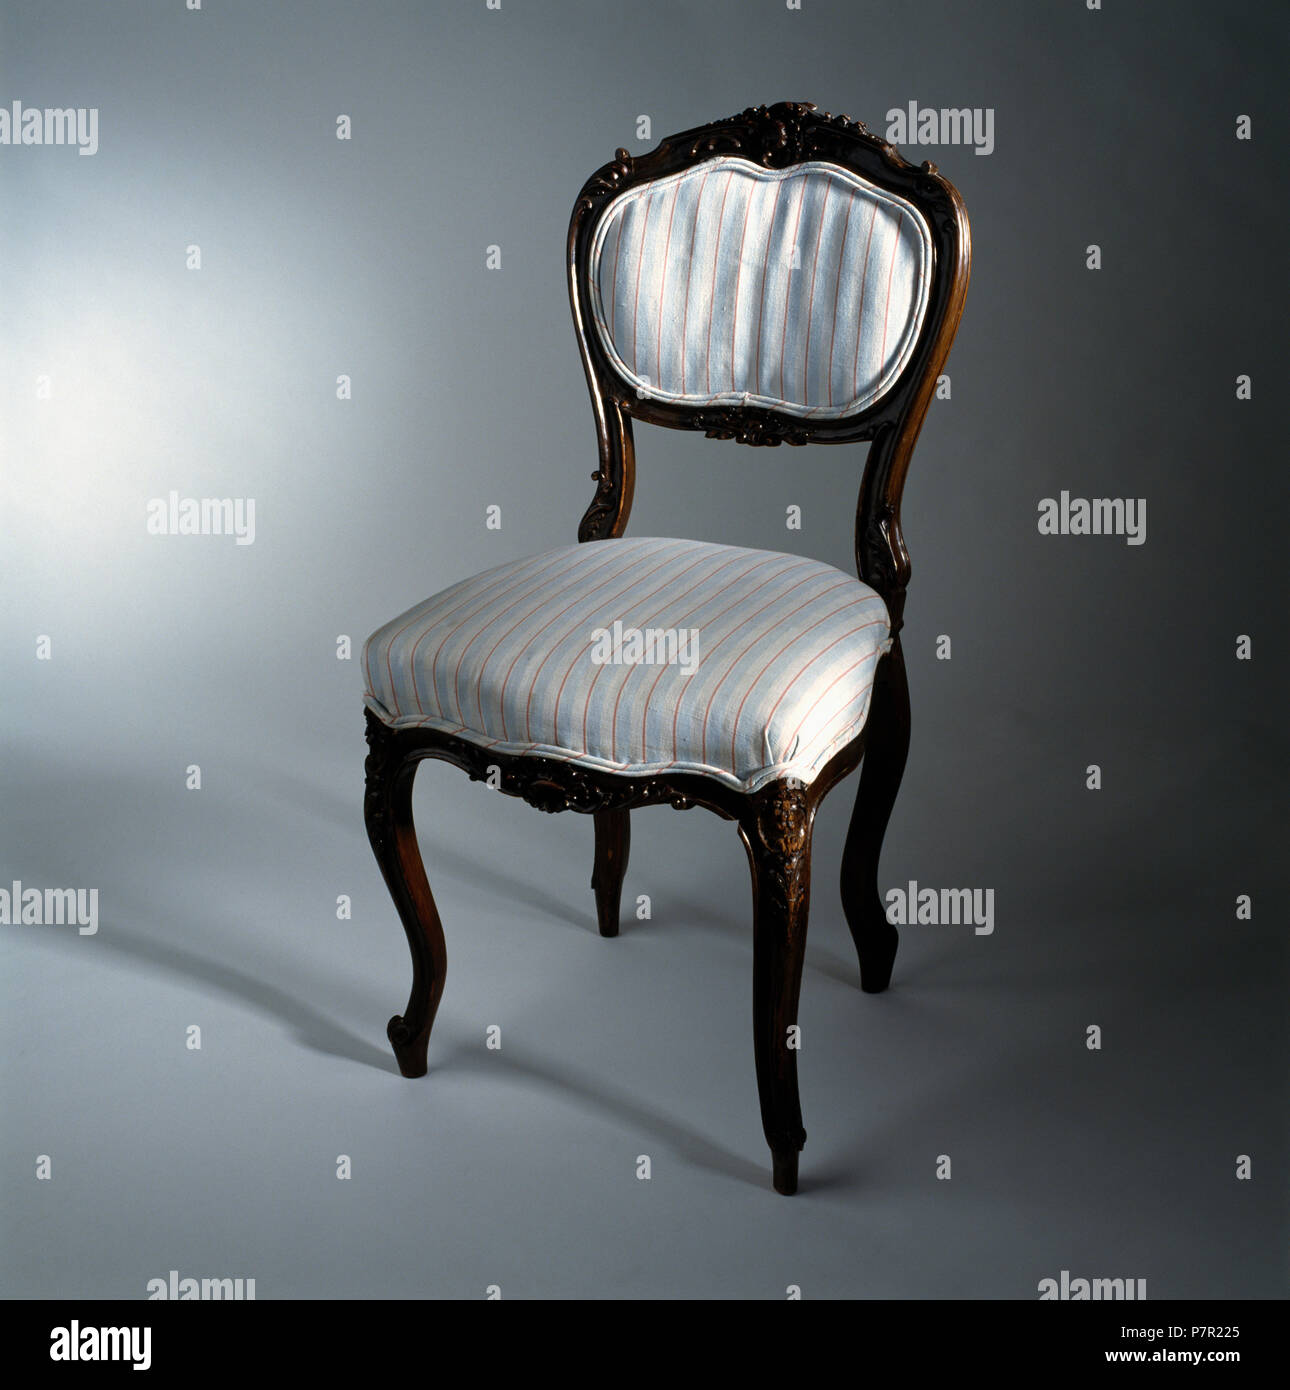 Close Up Of Victorian Dining Chair Re Upholstered With Striped White Fabric Stock Photo Alamy